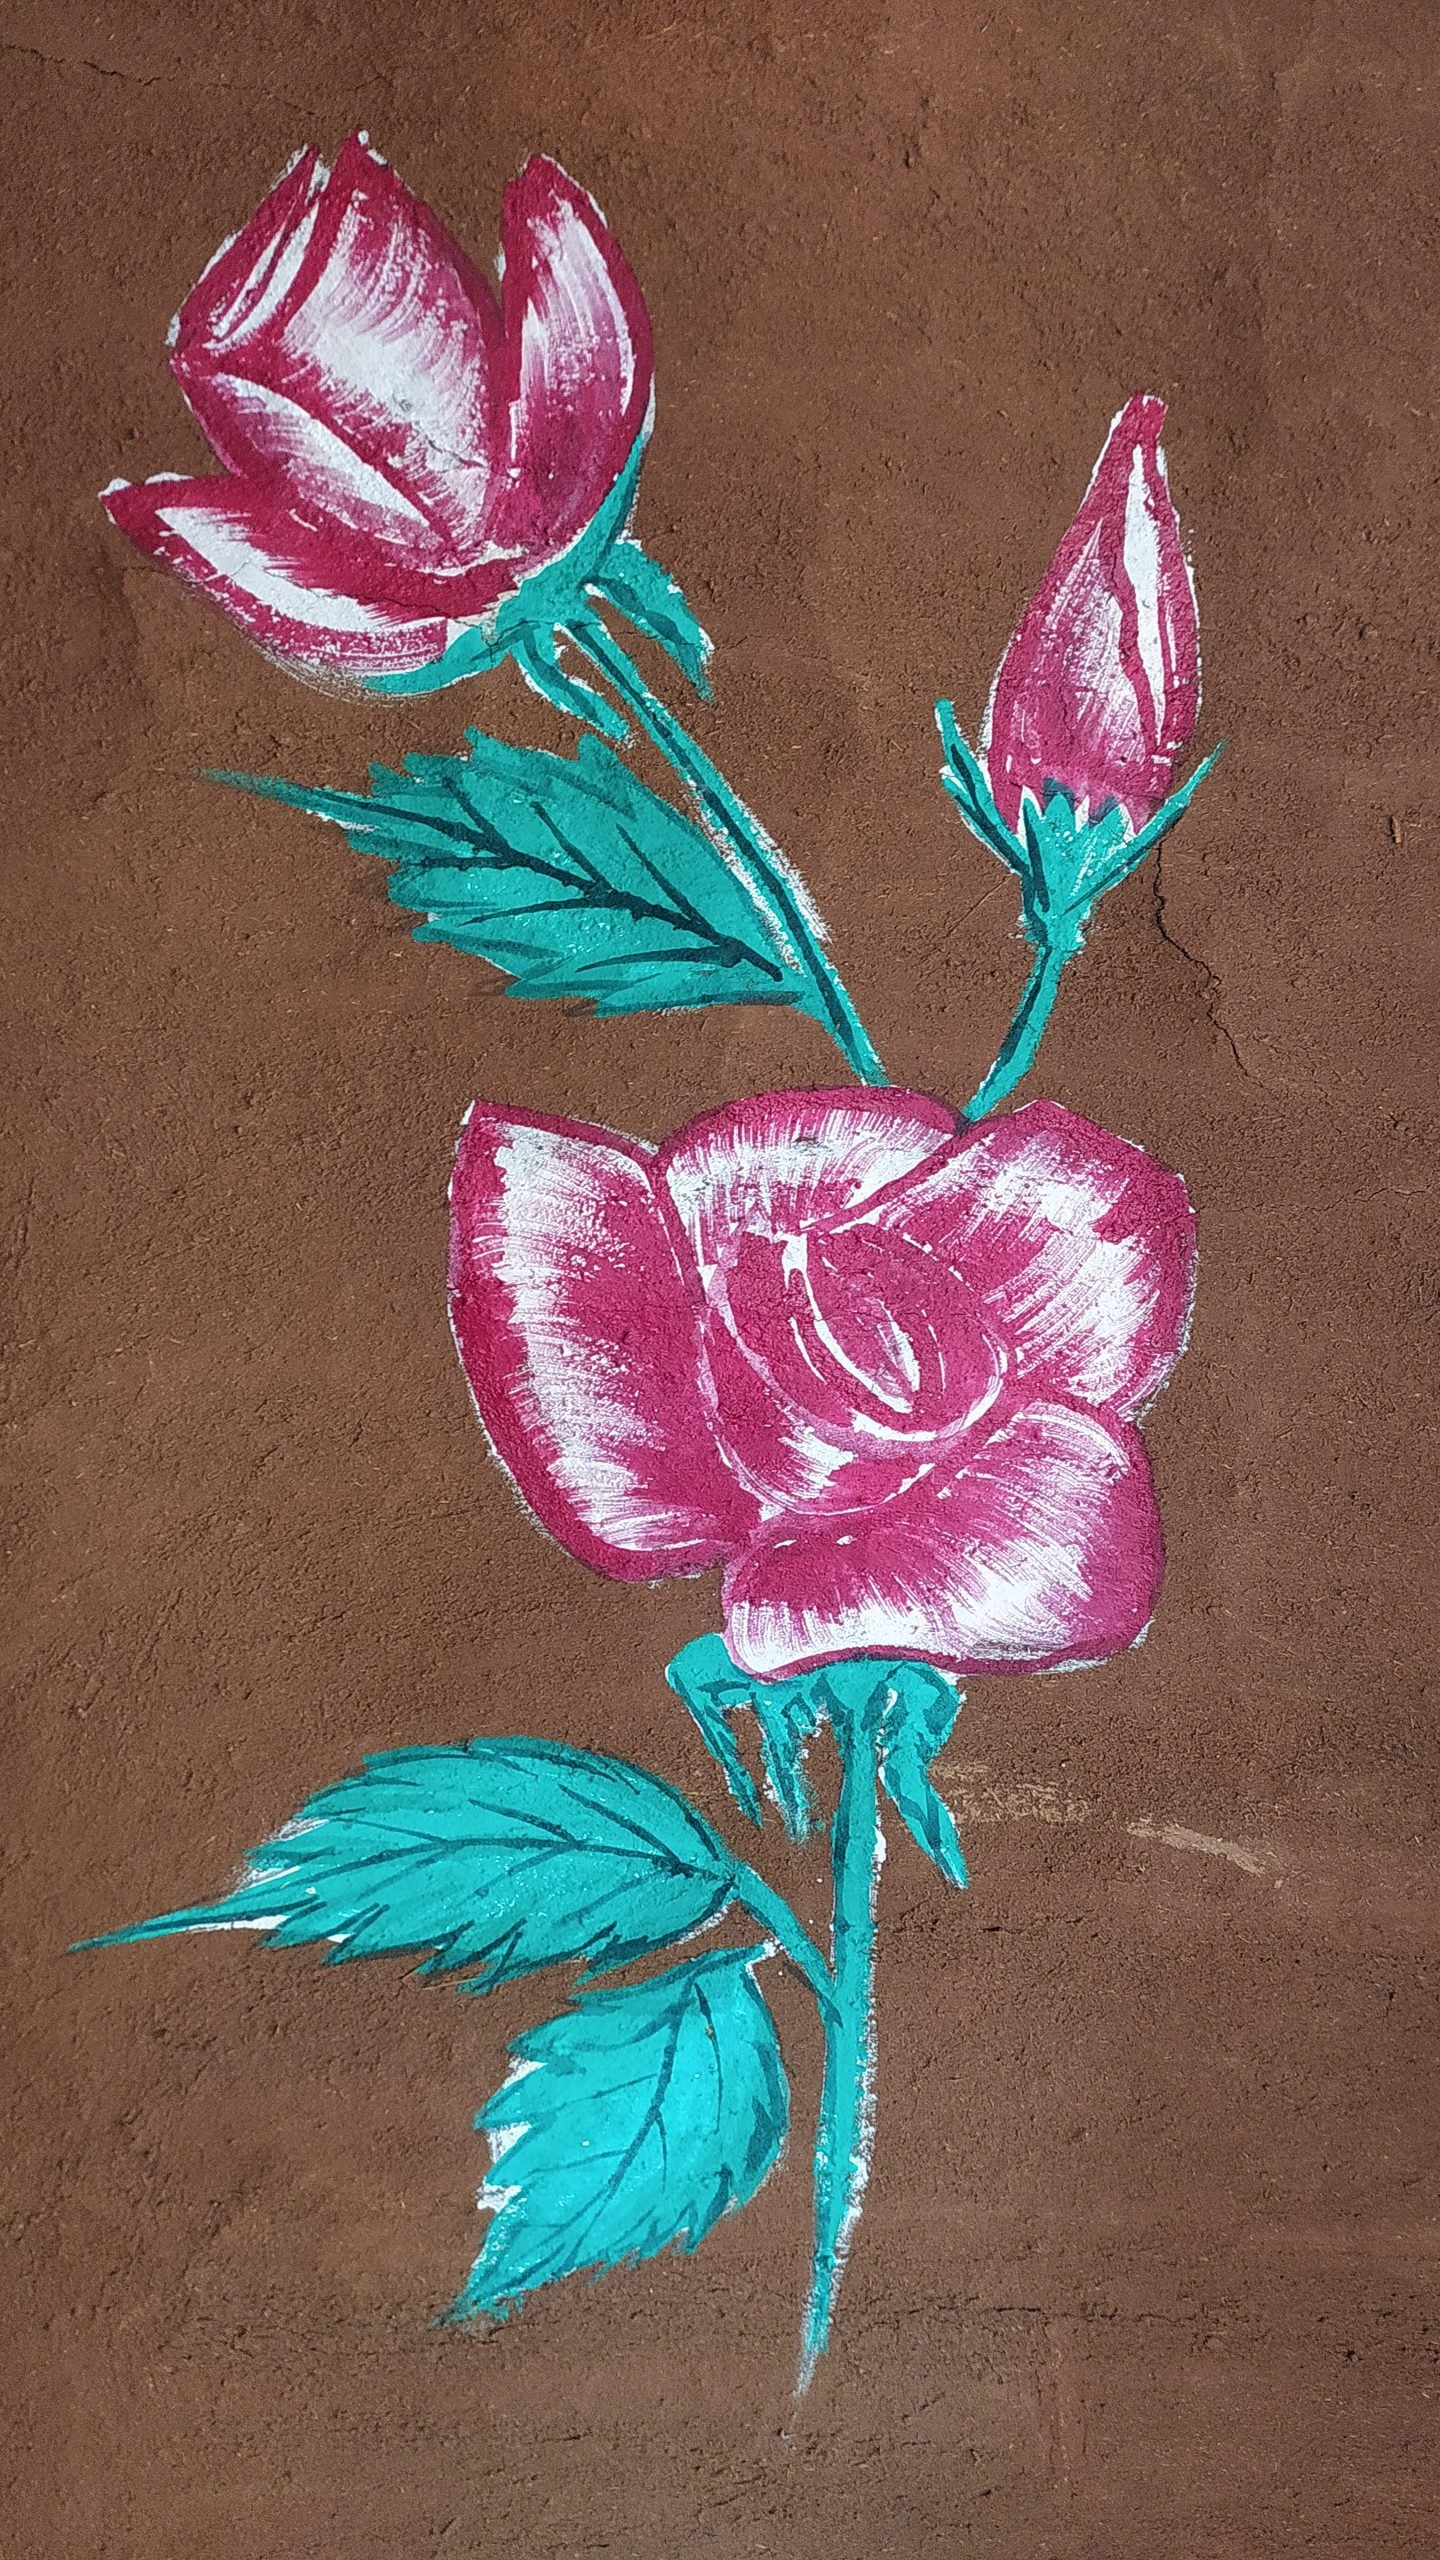 Rose painting on wall